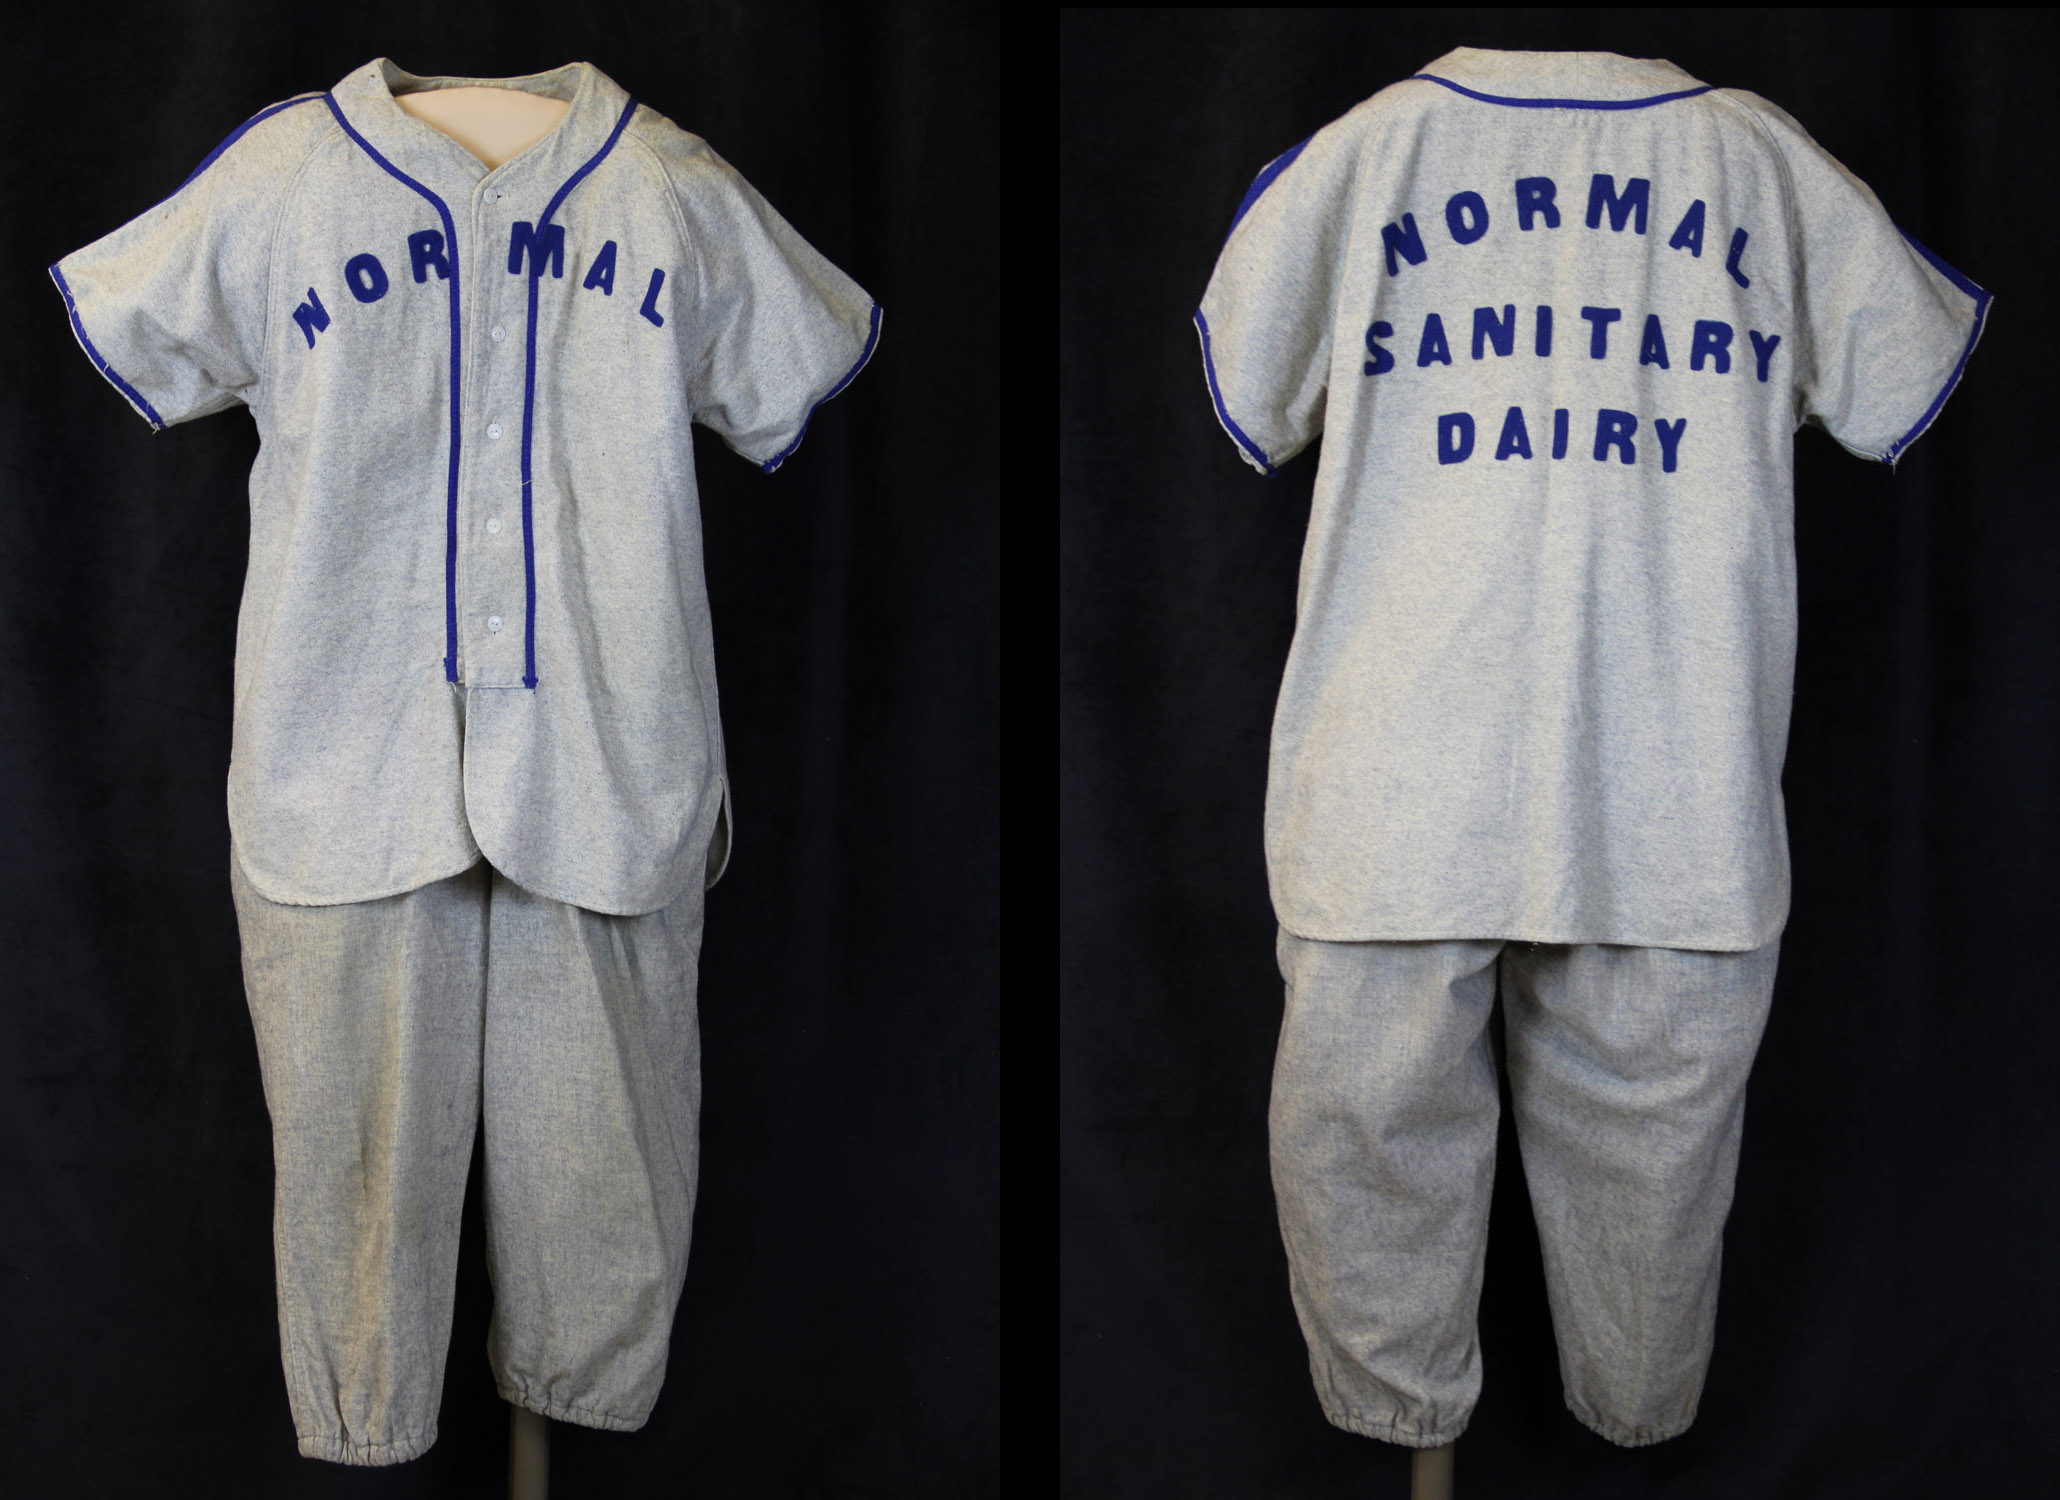 Uniform worn by a member of the Normal Sanitary Dairy's baseball team in the late 1930s and early 1940s.